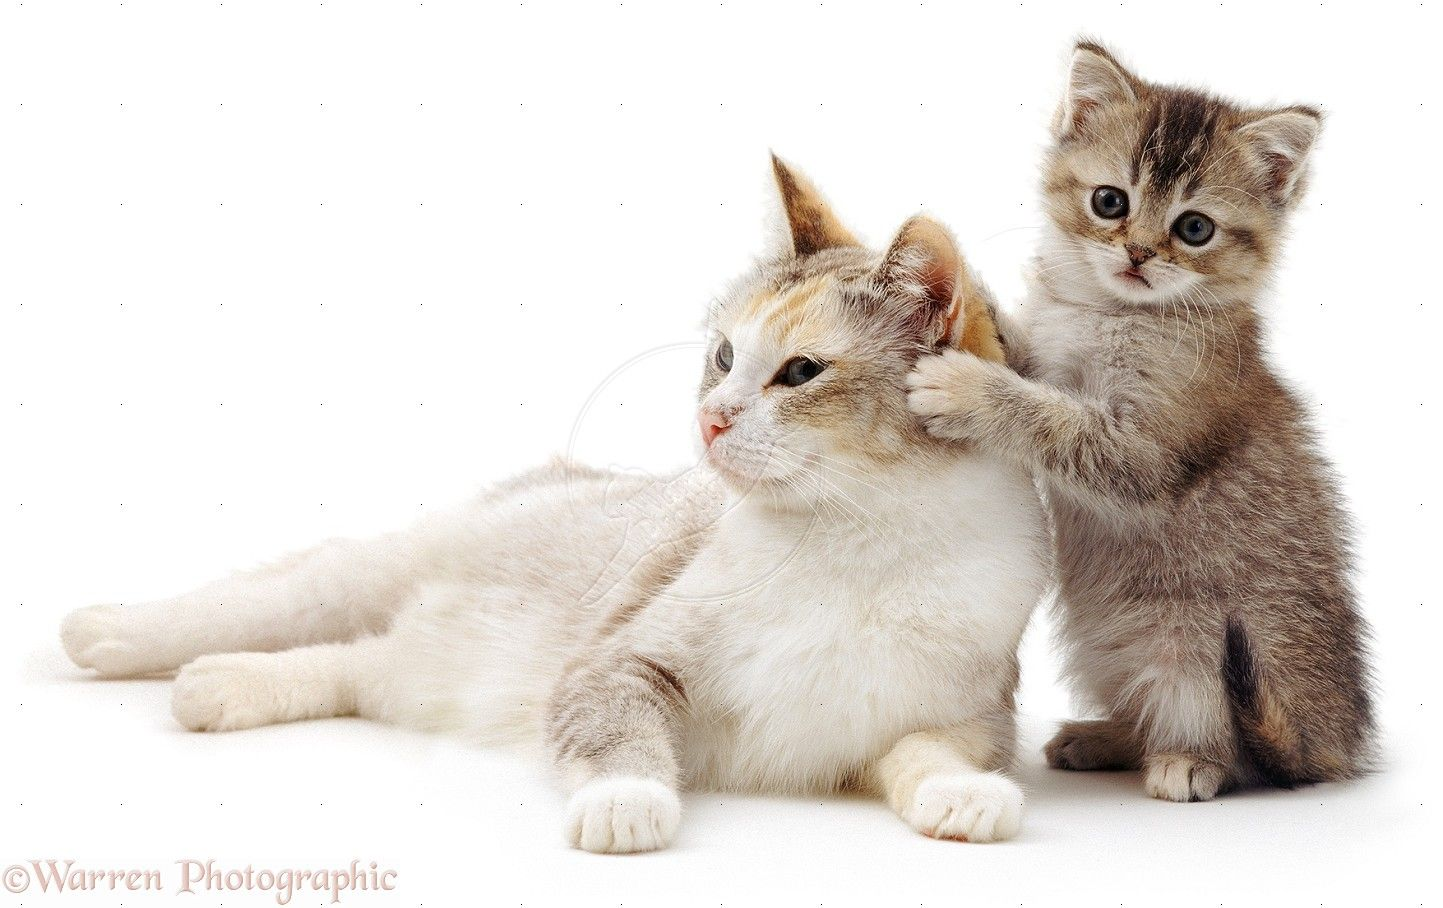 cute kittens & cats photos mother cat Pearl with her